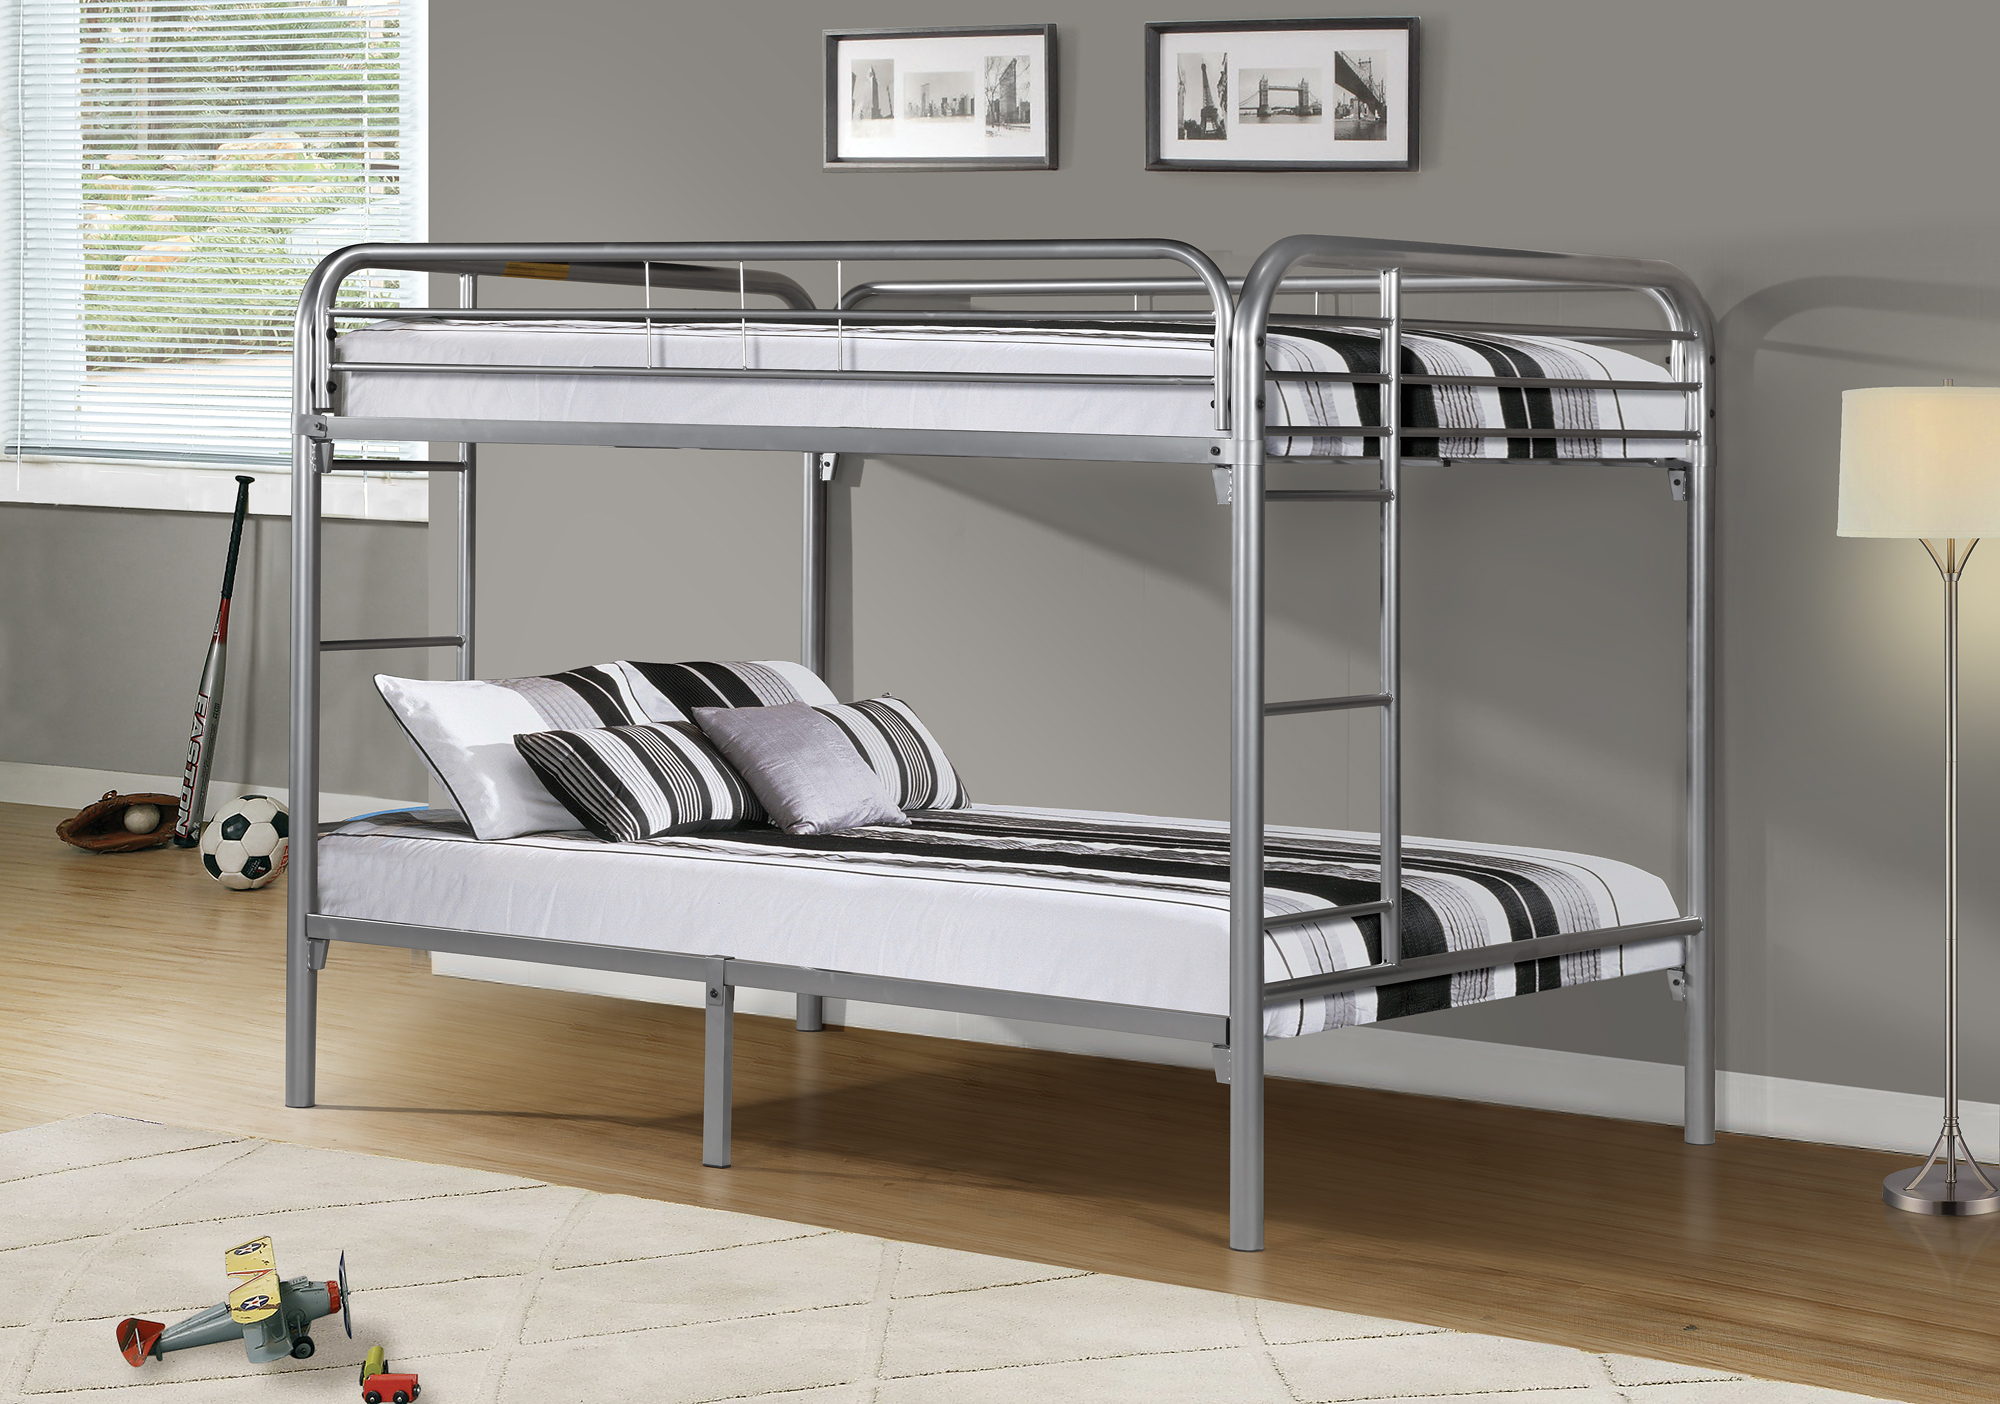 Double Bunk Beds I 2233s Silver Metal Double Double Bunk Bed Frame